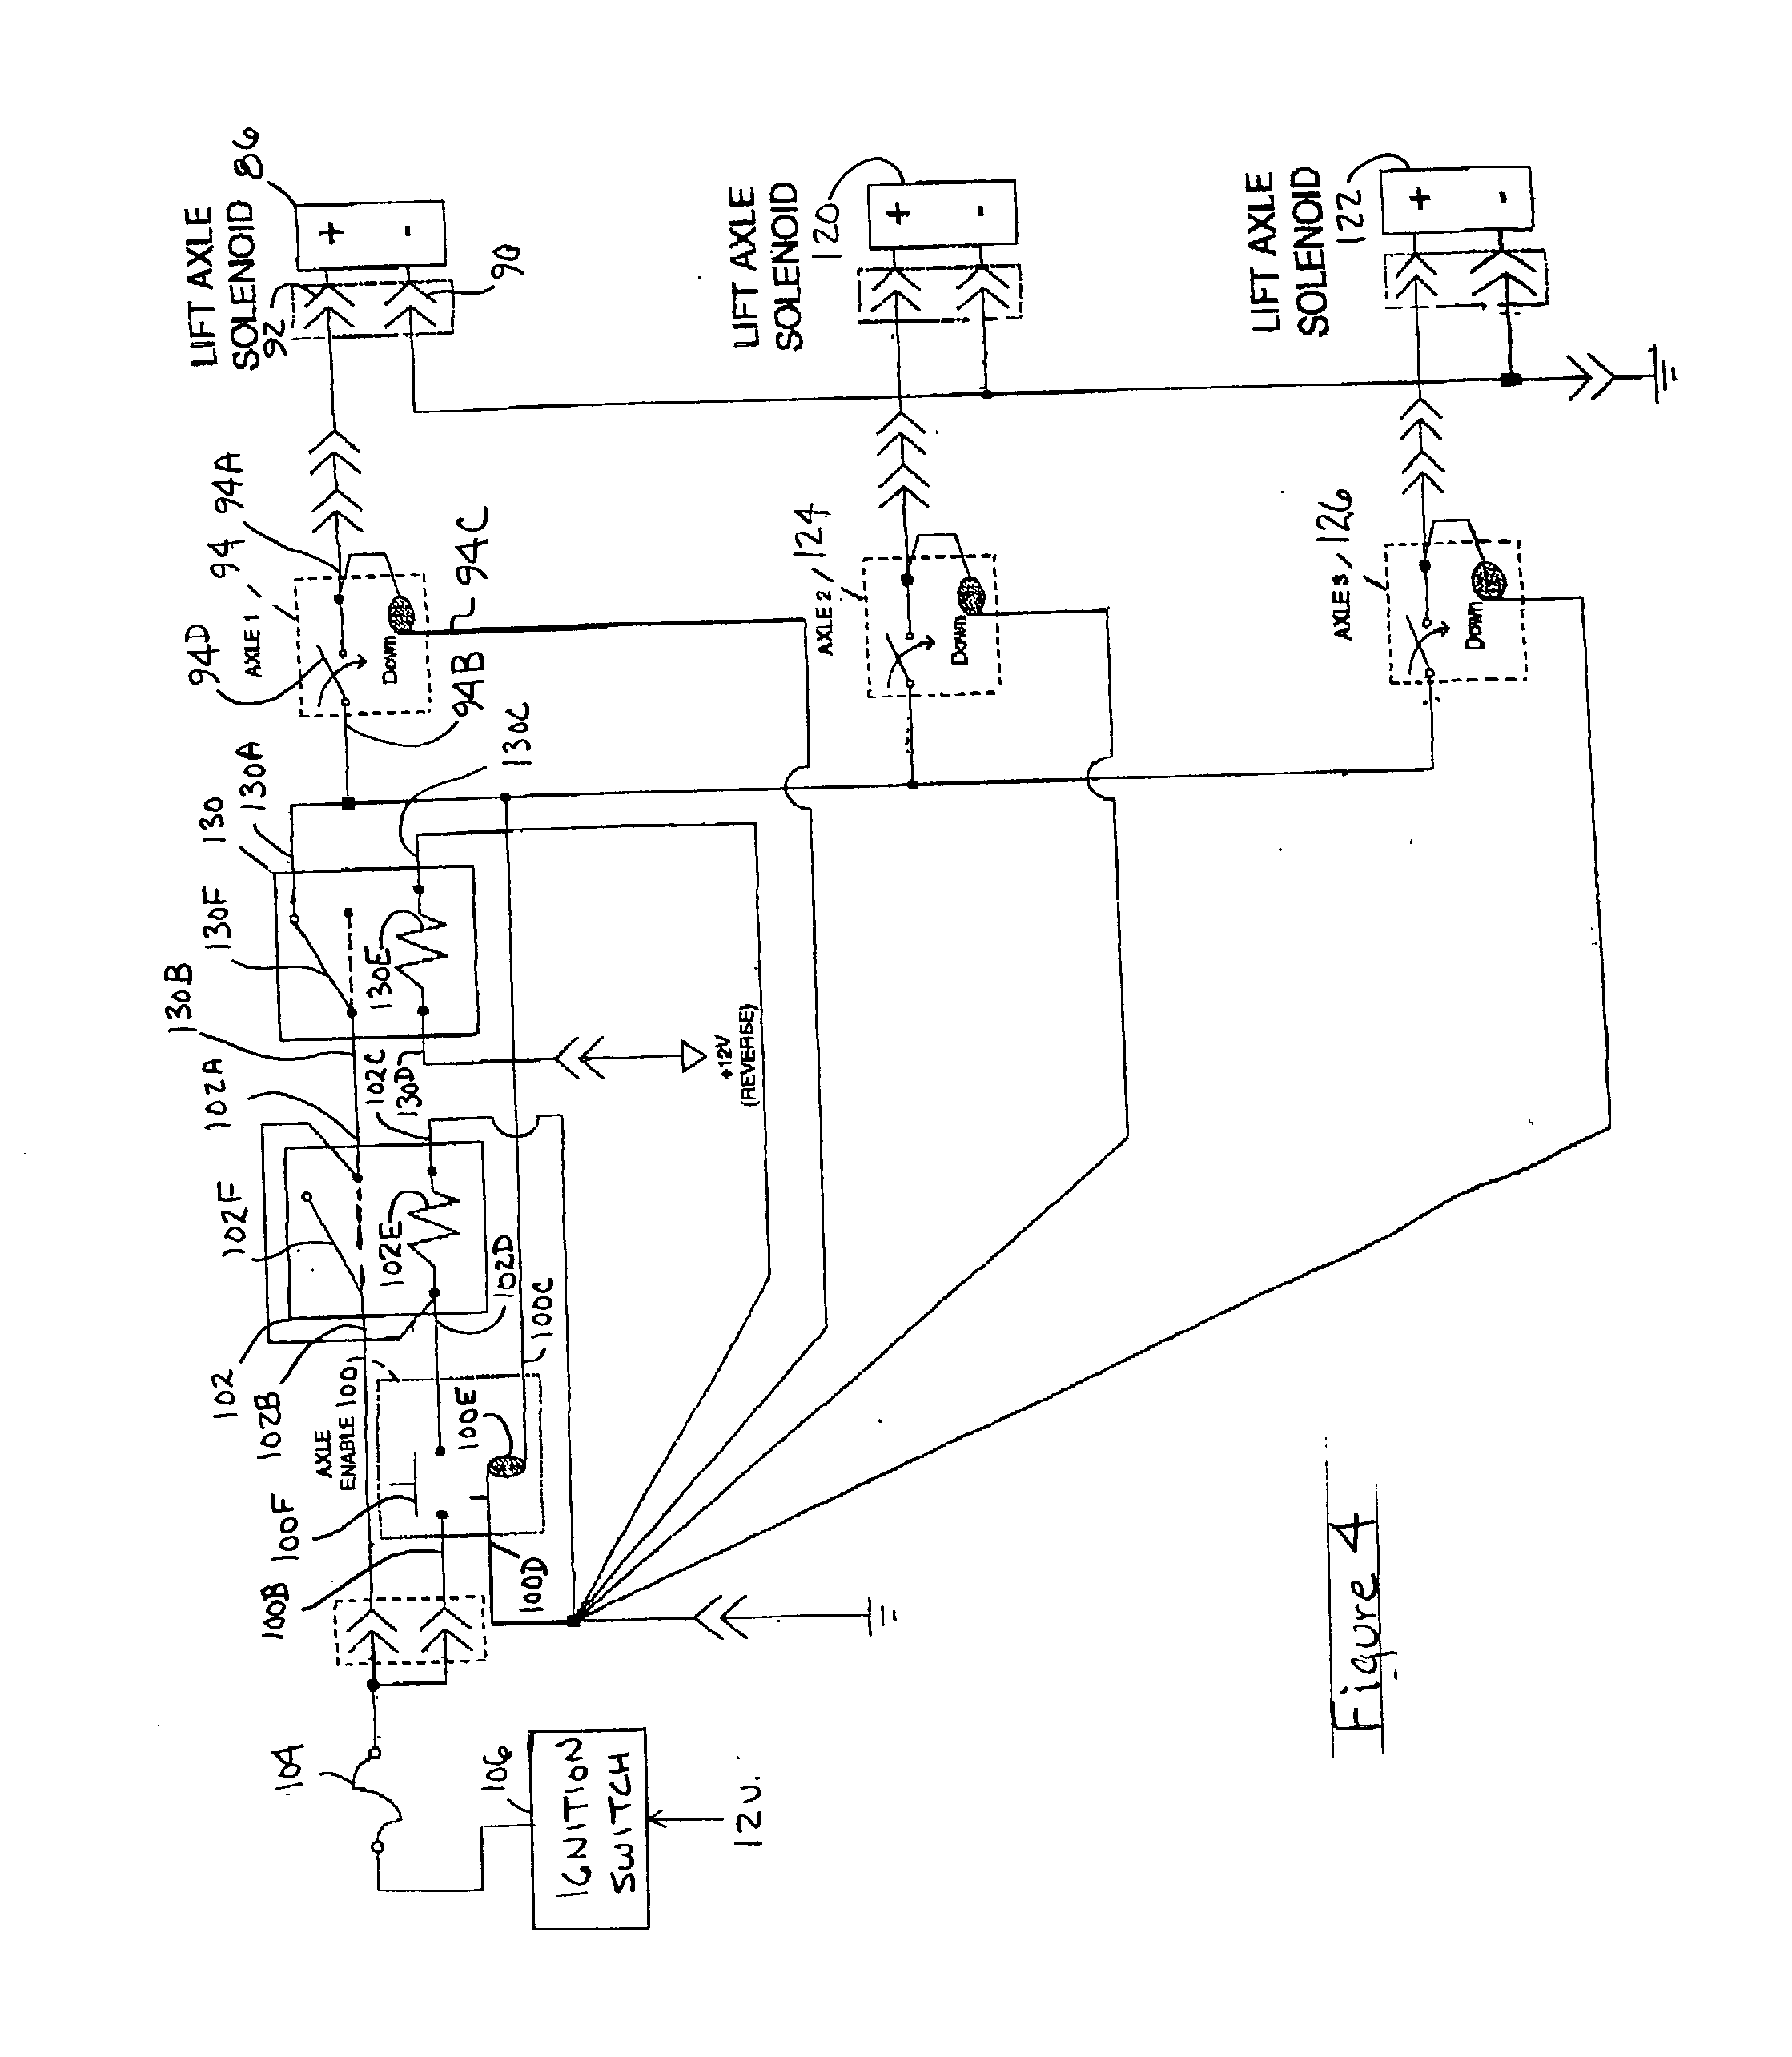 patent us20030151222 - lift axle control and module